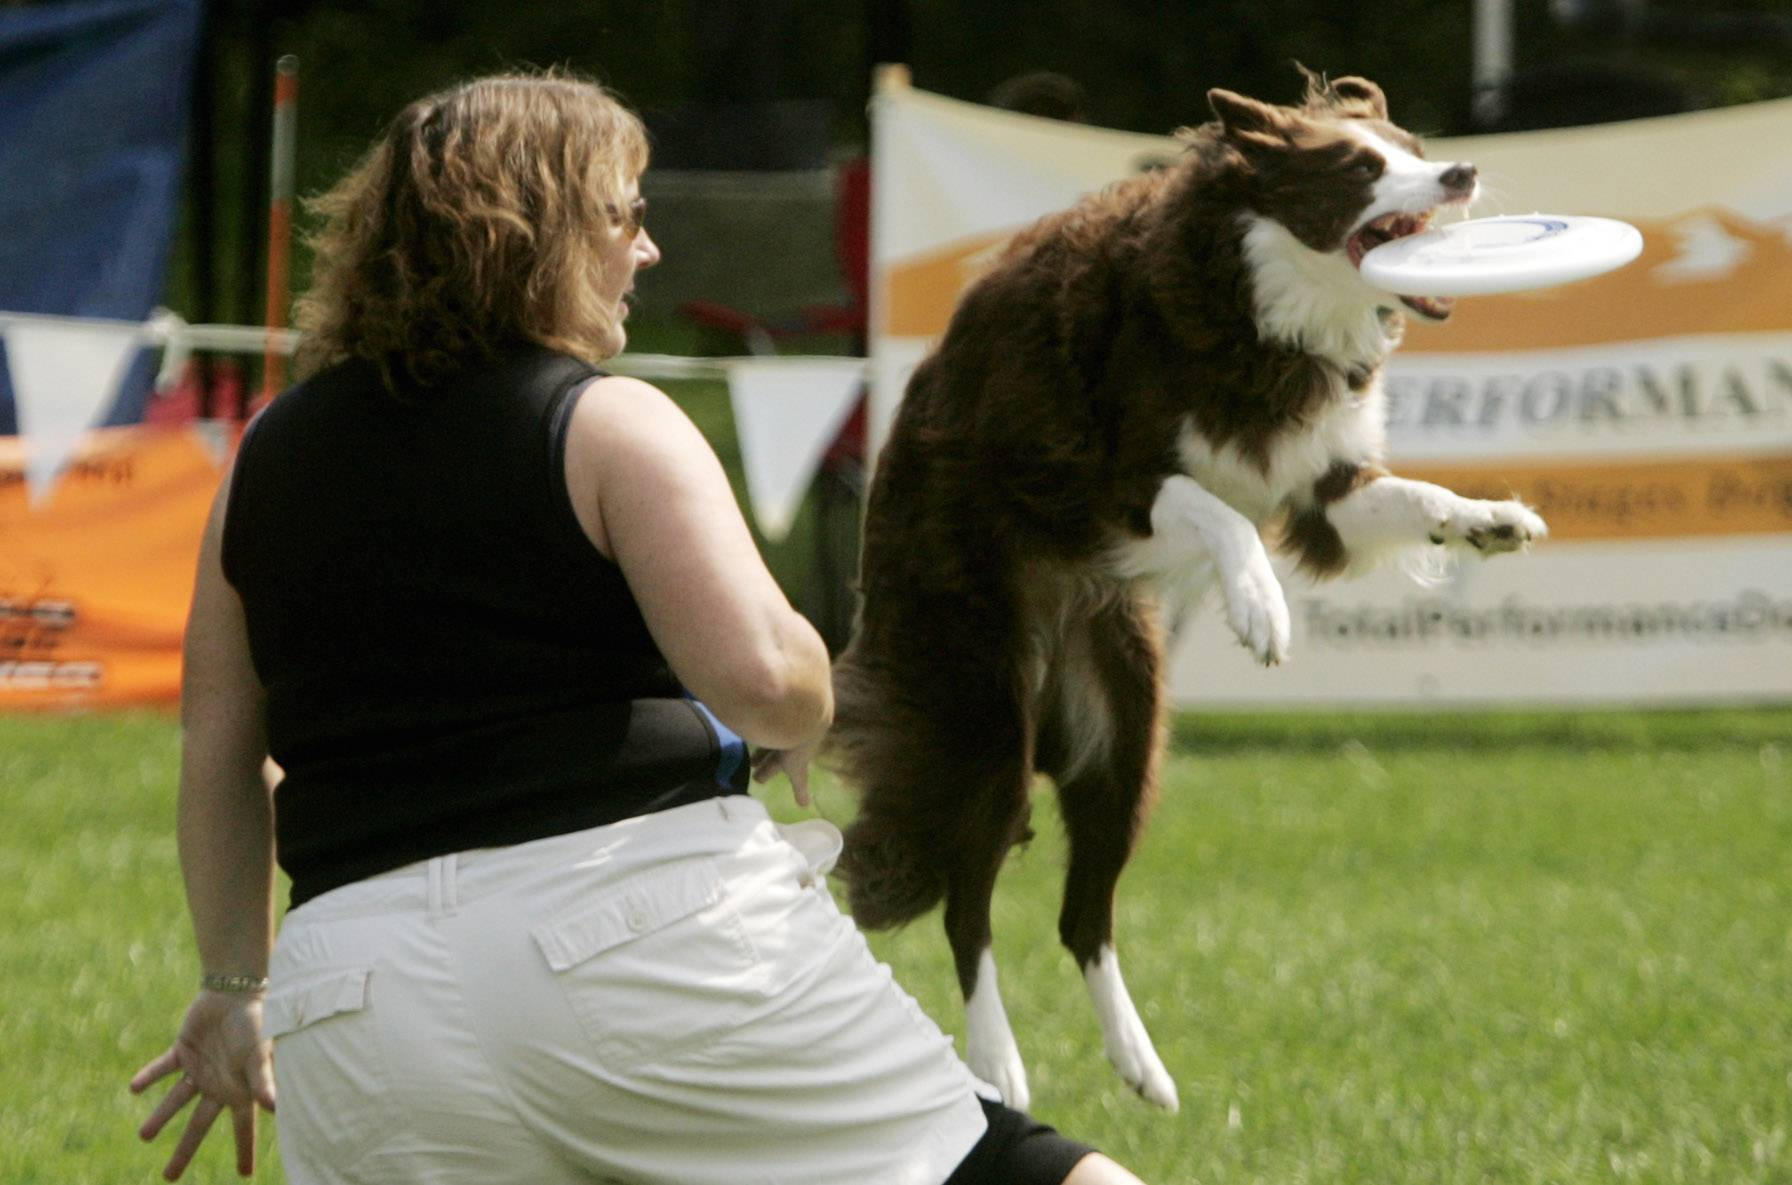 The Ashley Whippet Championships of dog disc competitions are a part of the Last Fling festival in Naperville from 9:30 a.m. to 4:30 p.m. Saturday at the Riverwalk Grand Pavilion west of Centennial Beach.